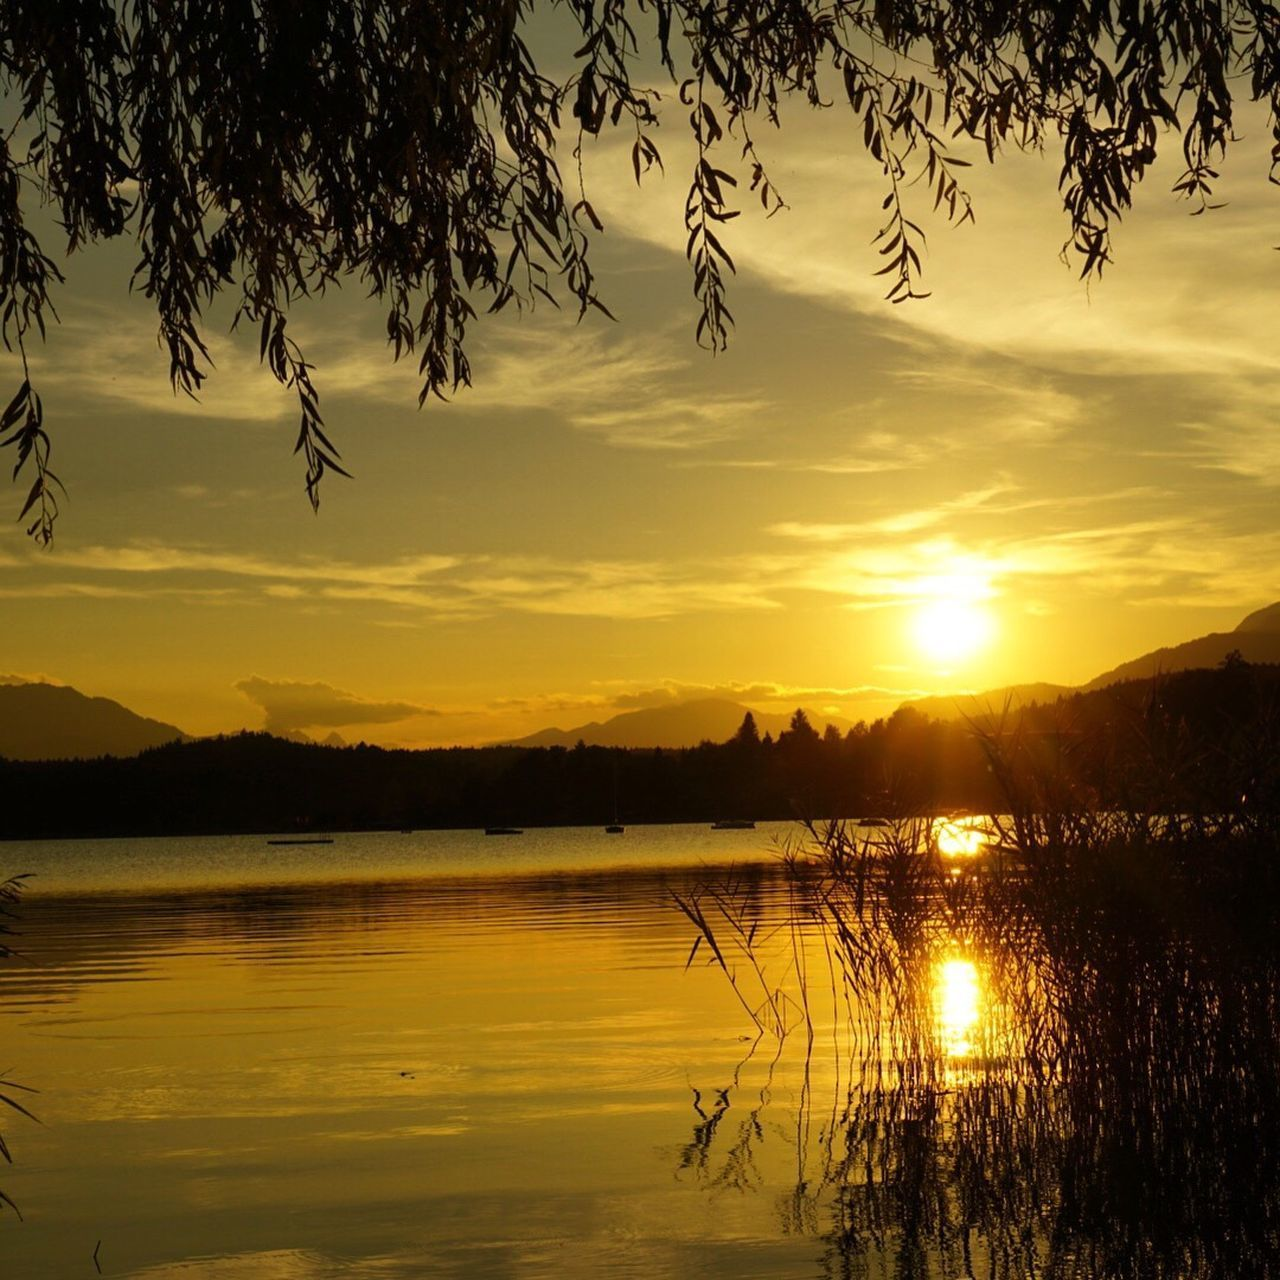 sunset, water, reflection, tranquil scene, scenics, lake, sun, tranquility, beauty in nature, tree, silhouette, idyllic, sunlight, nature, branch, calm, orange color, majestic, cloud - sky, sky, mountain, bright, non-urban scene, romantic sky, lens flare, vibrant color, tourism, no people, vacations